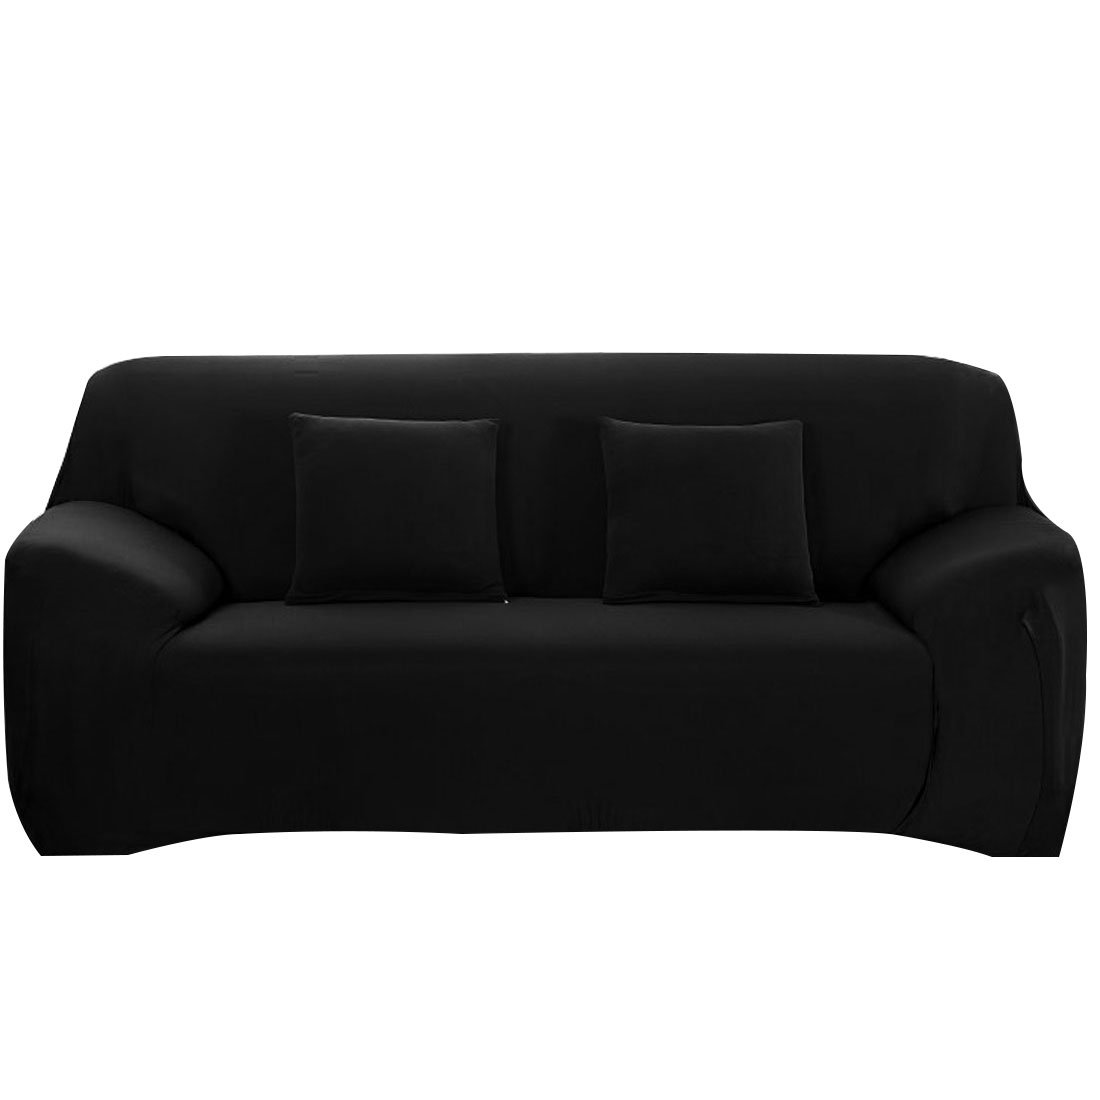 Amazon: Uxcell Stretch Sofa Slipcover Sofa Covers 3 Seater Protector  Couch Covers Featuring Soft Form Fit Slip Resistant 74-90 Inches Chair  Covers Black